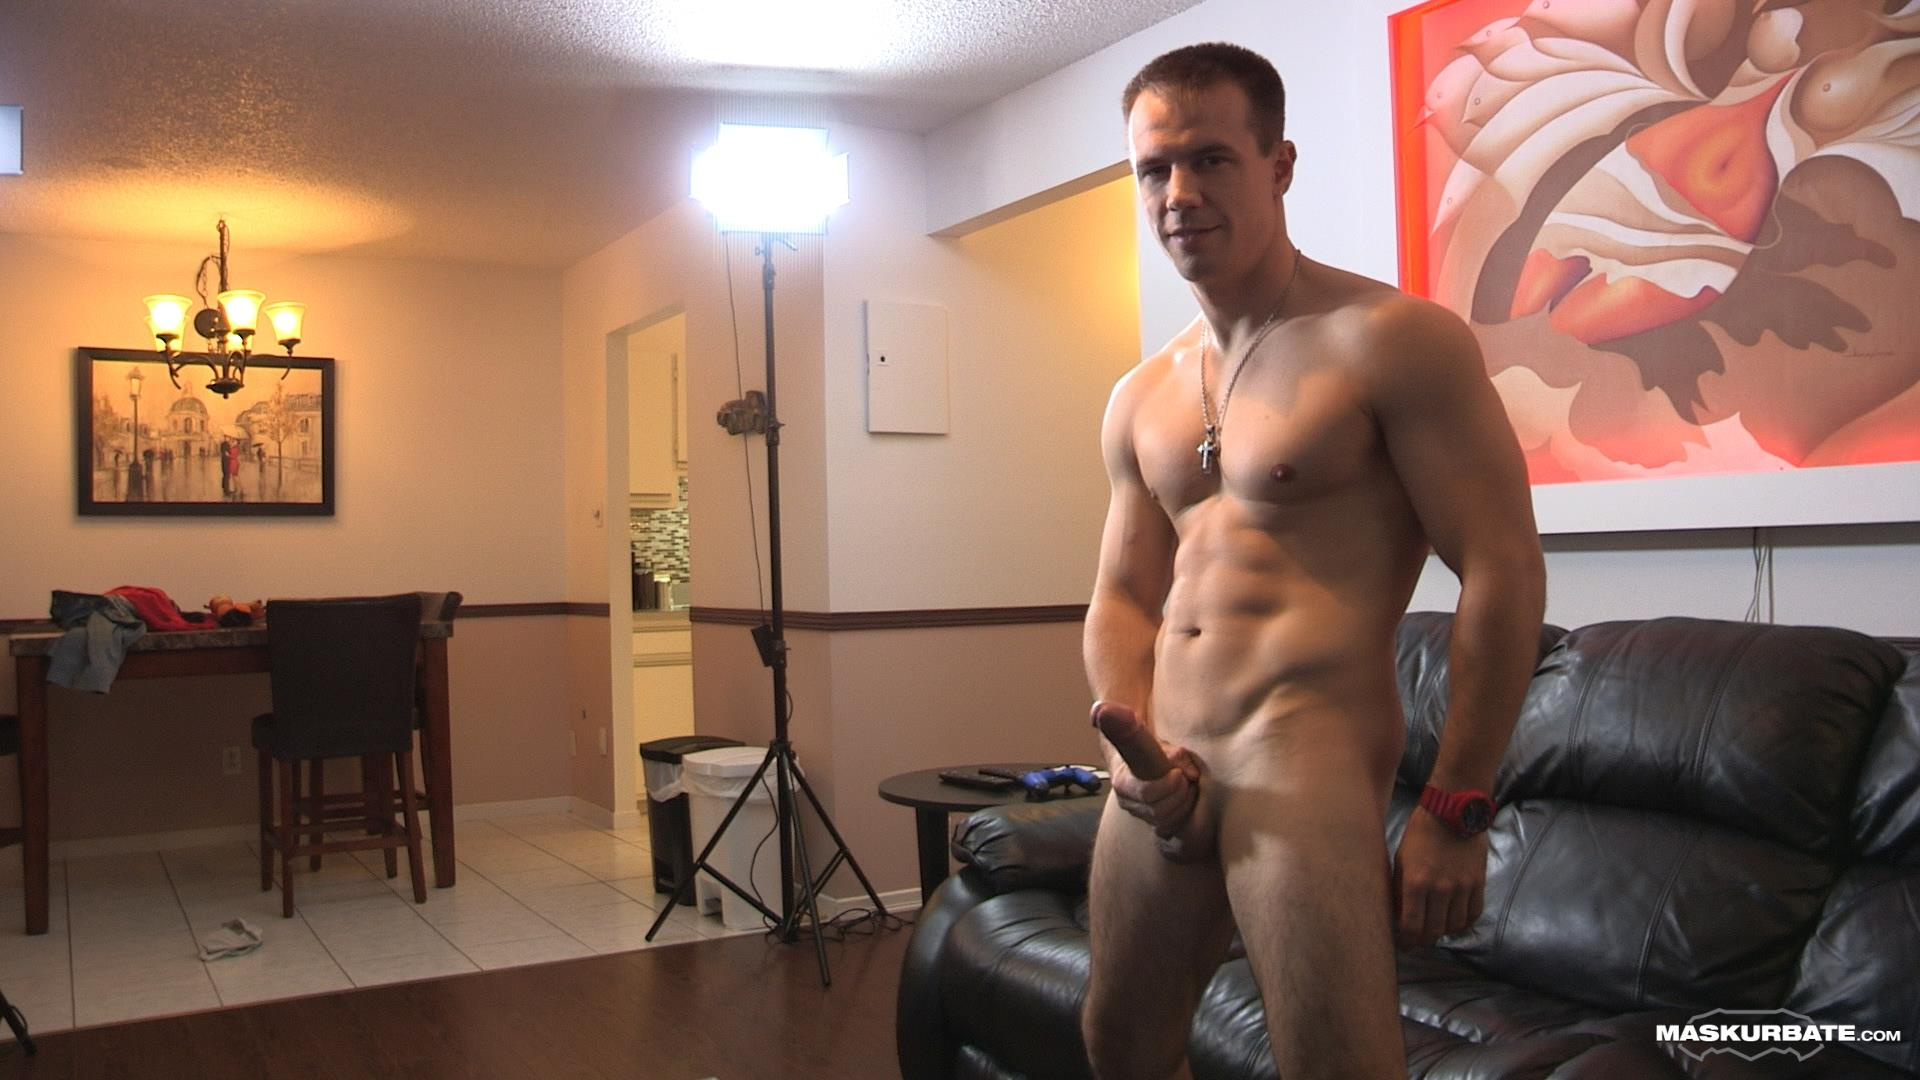 Maskurbate-Ricky-Straight-Guy-Masturbate-Big-Uncut-Cock-Amateur-Gay-Porn-08 Ricky Jerks His Huge Uncut Cock Until Jizz Shoots